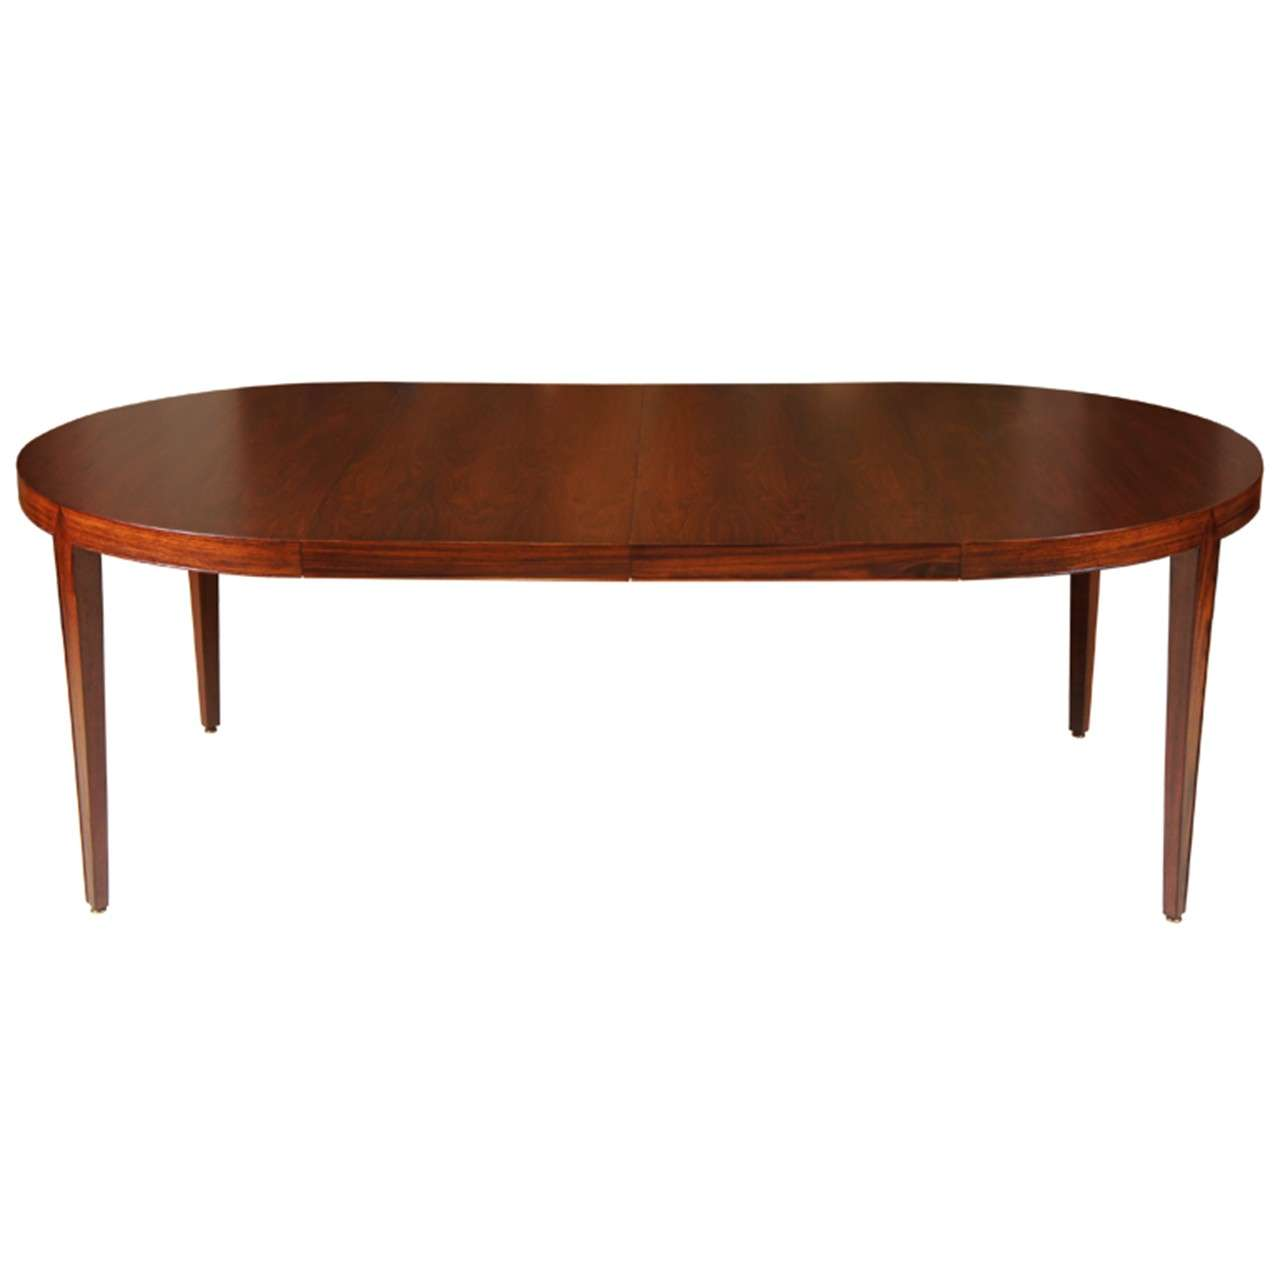 Danish modern rosewood dining table at 1stdibs for Danish modern dining room table